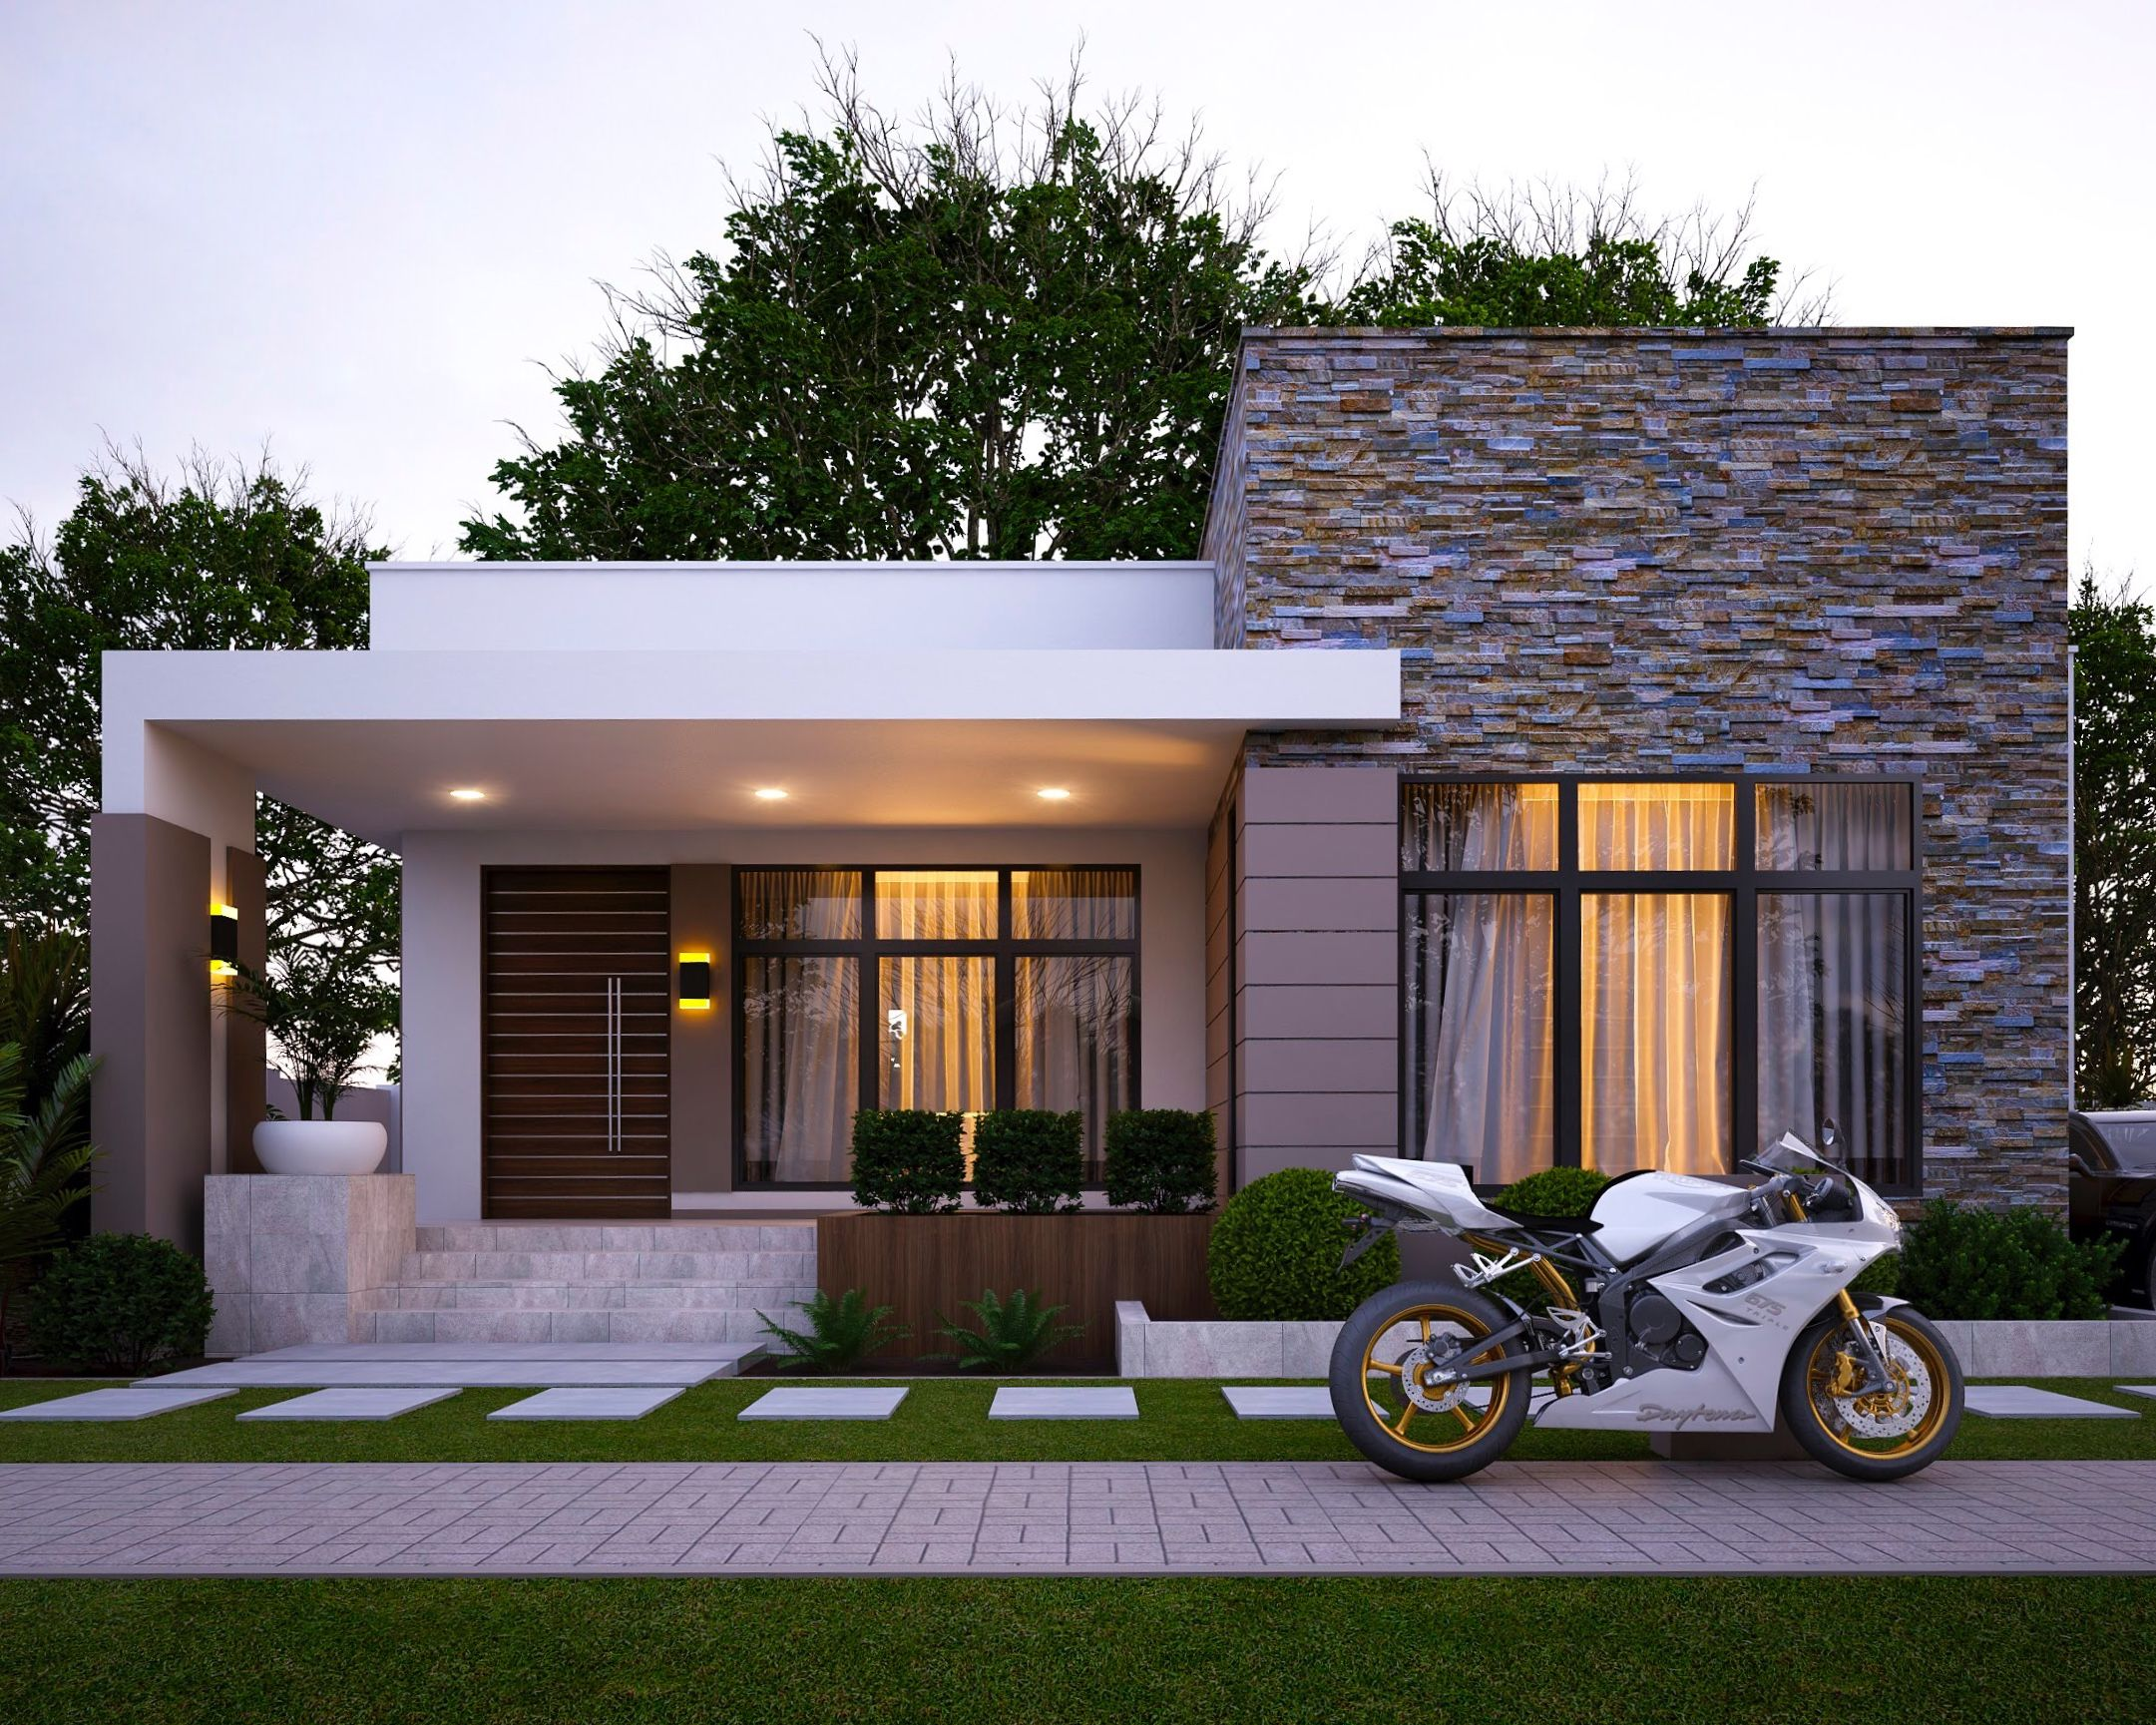 Pin by Erin Rehkopf on architecture Dream house exterior